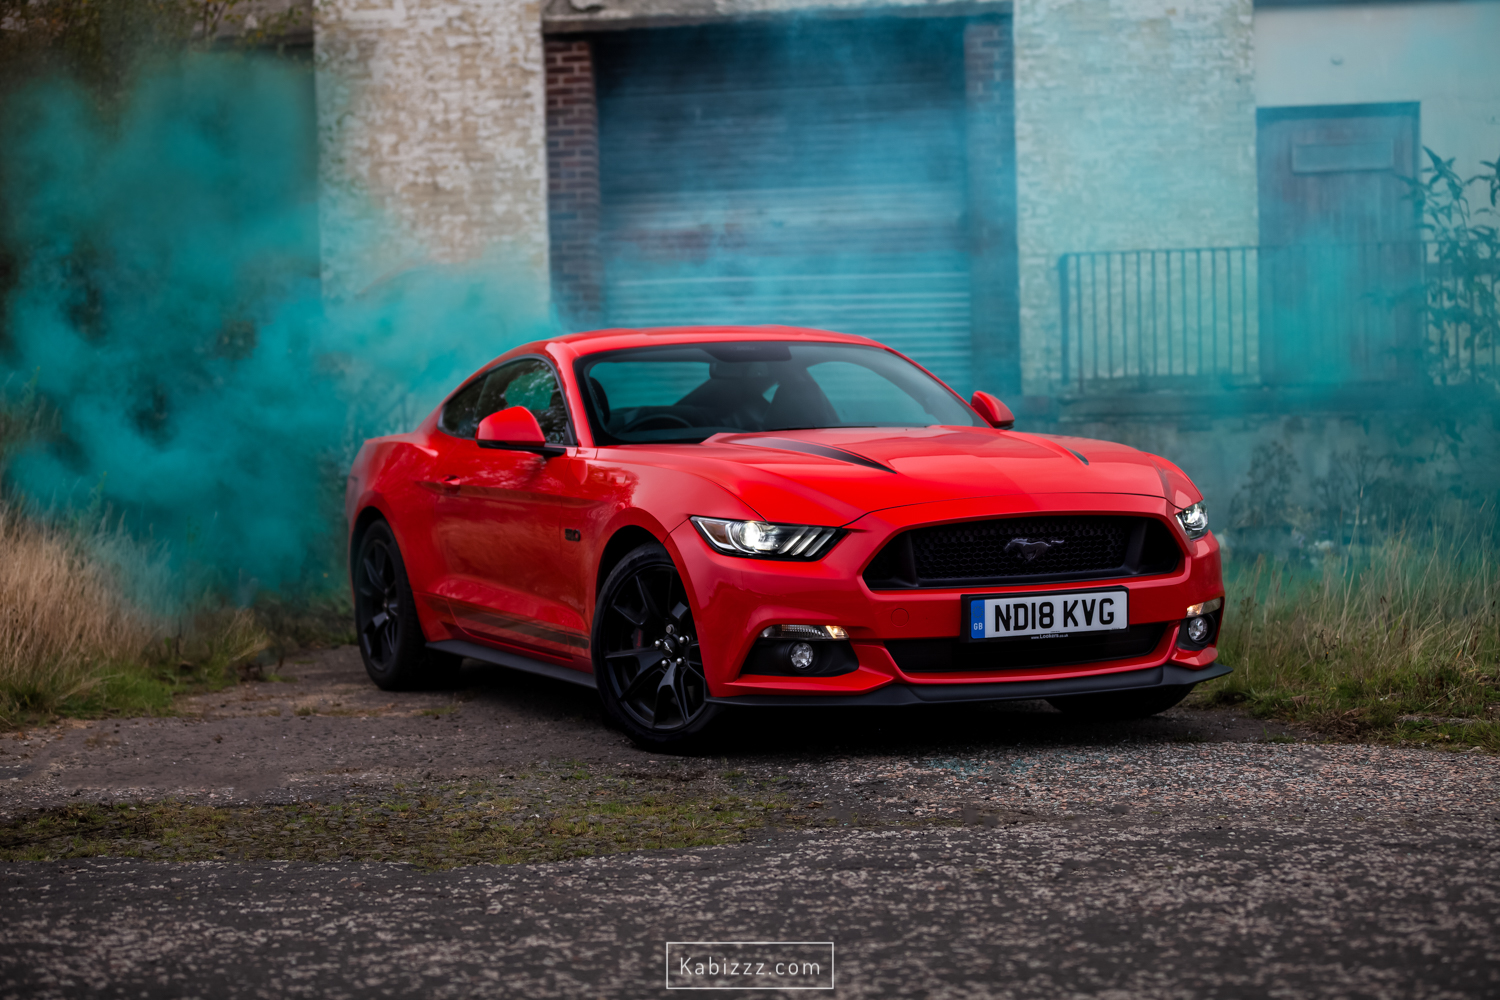 2018_ford_mustang_red_scotland_photography_automotive_photography_kabizzz-3.jpg